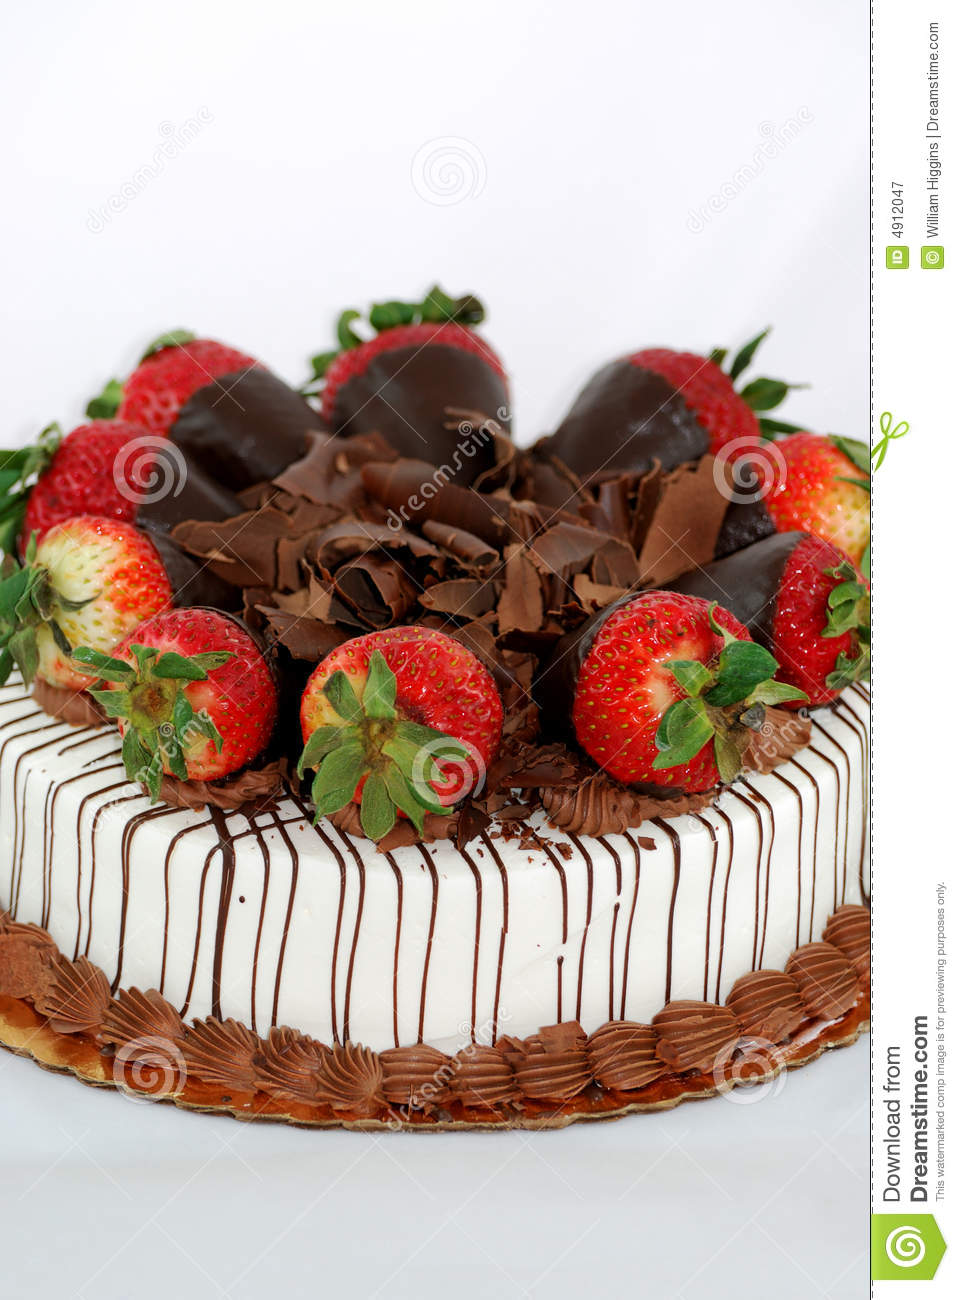 Vanilla Cake With Strawberries Stock Image Image Of